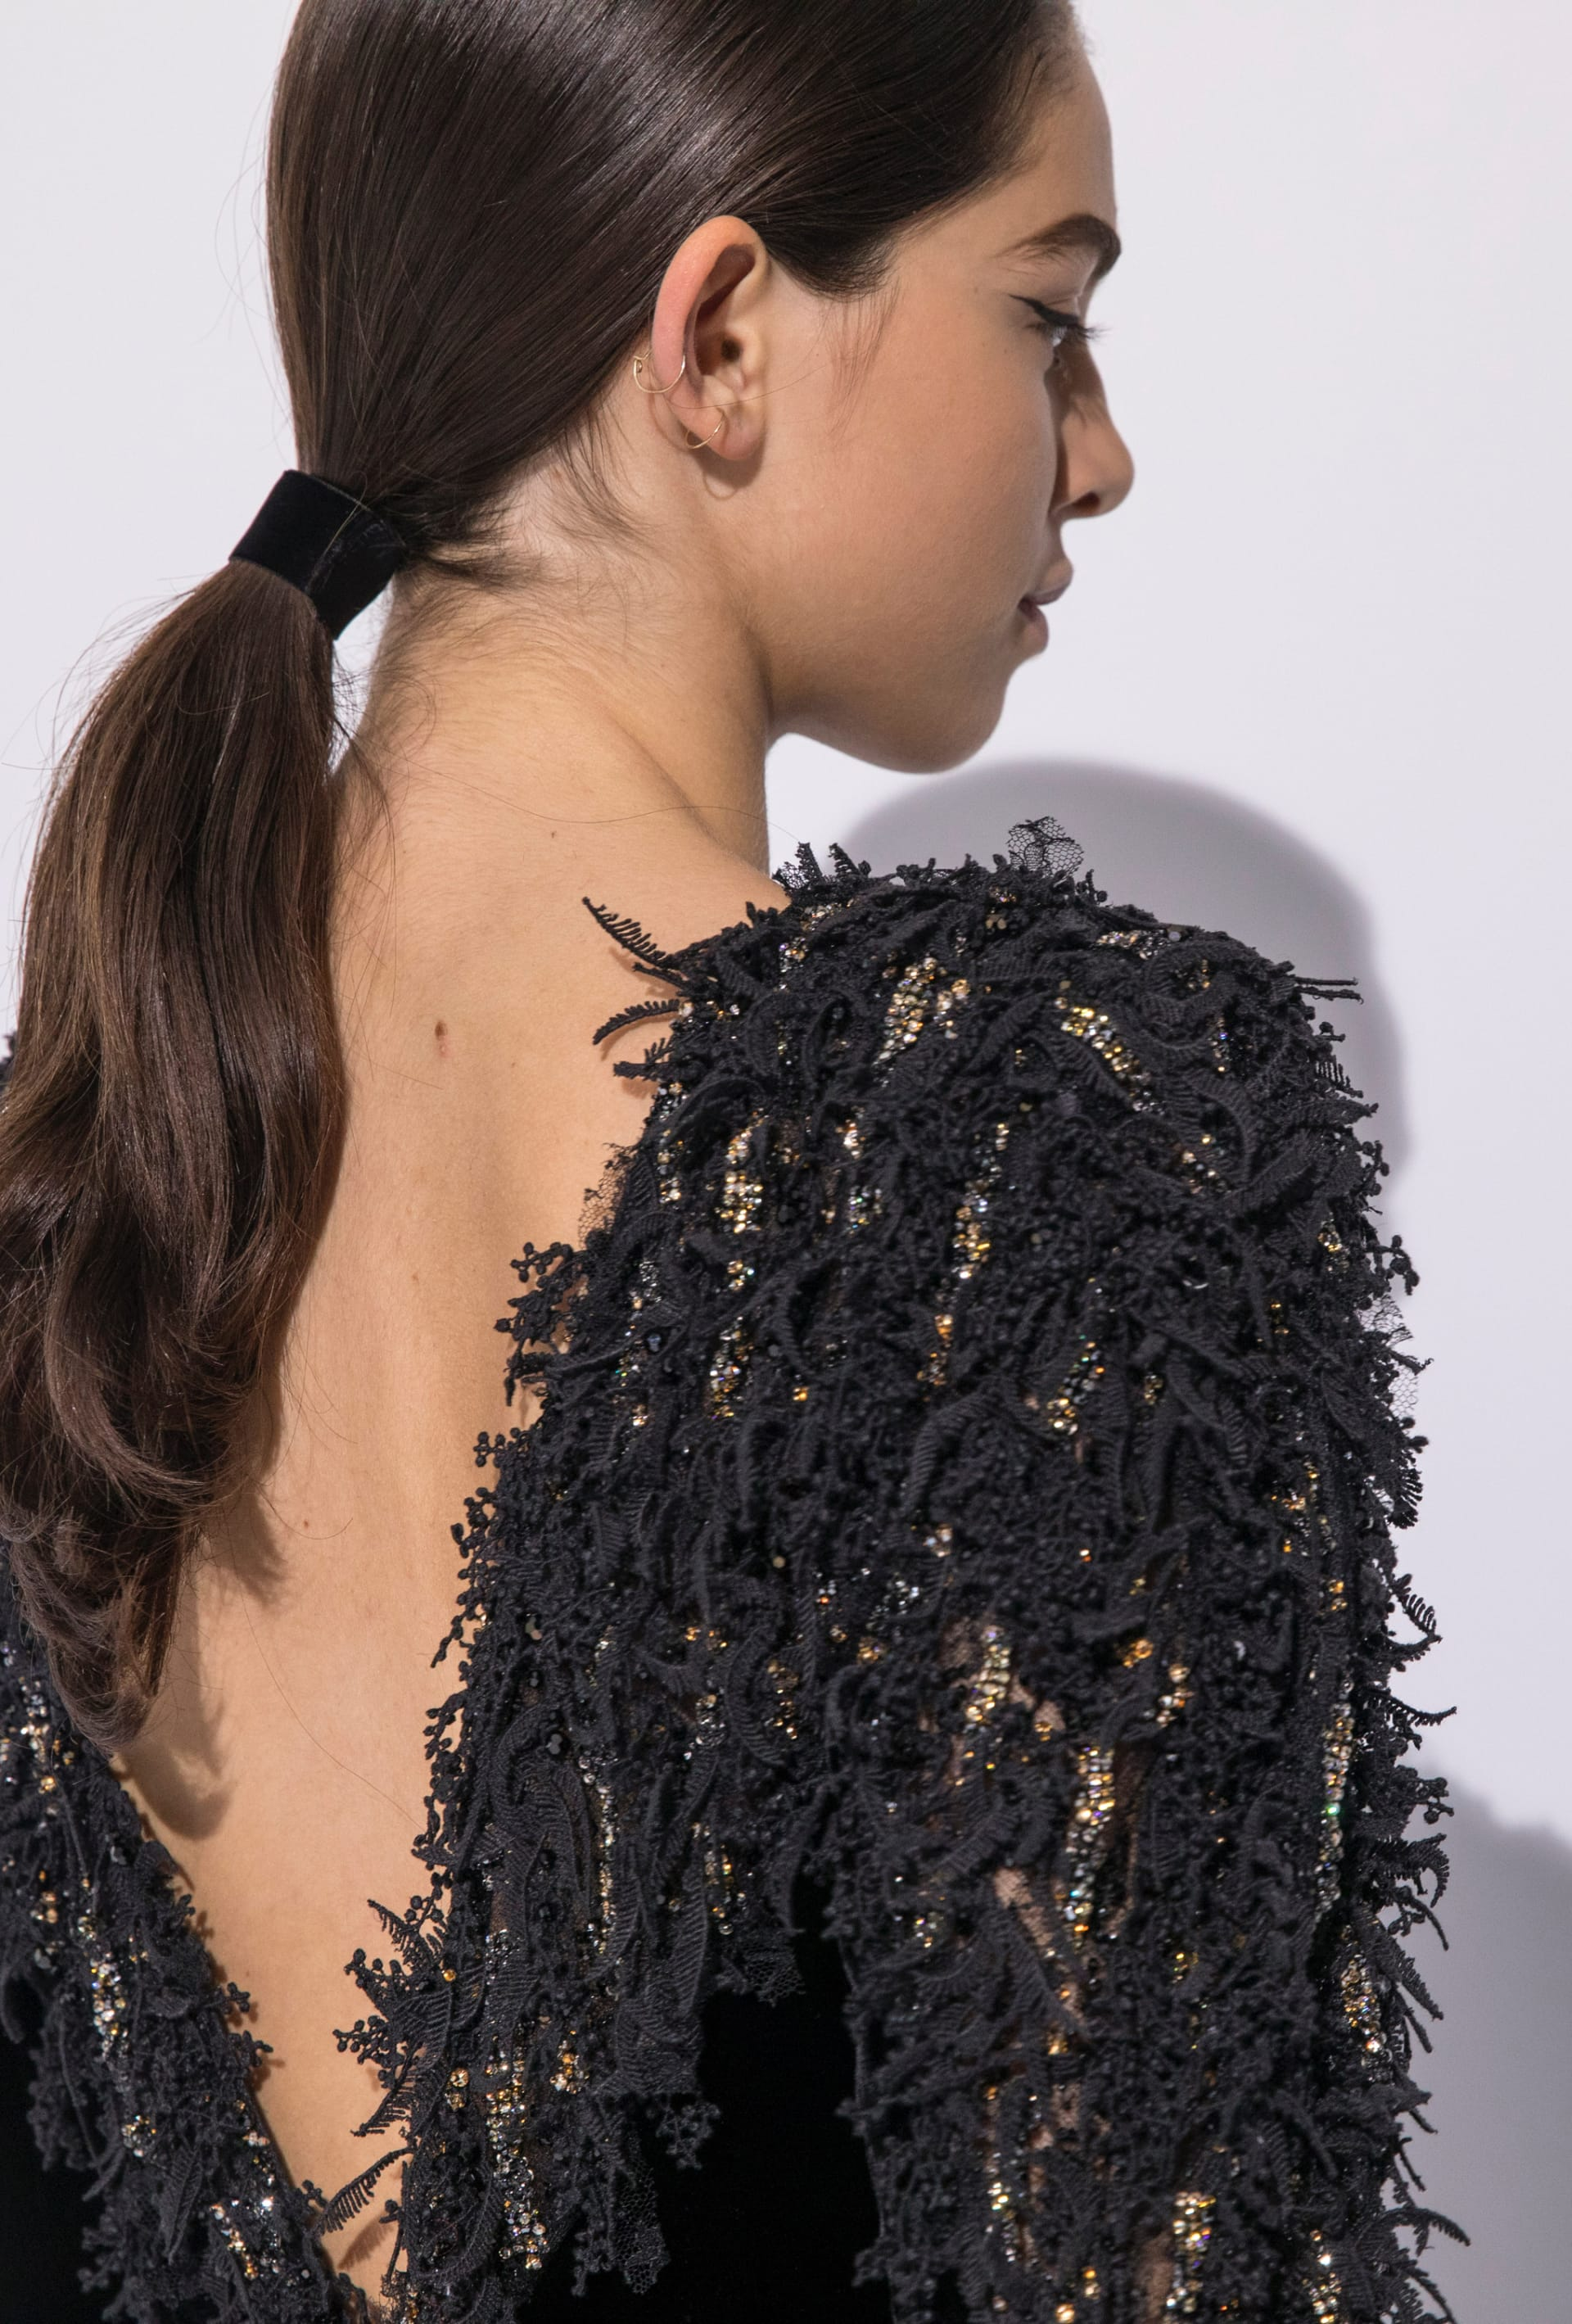 View 6 - Look 55 - Fall-Winter 2019/20 Haute-Couture - see full sized version